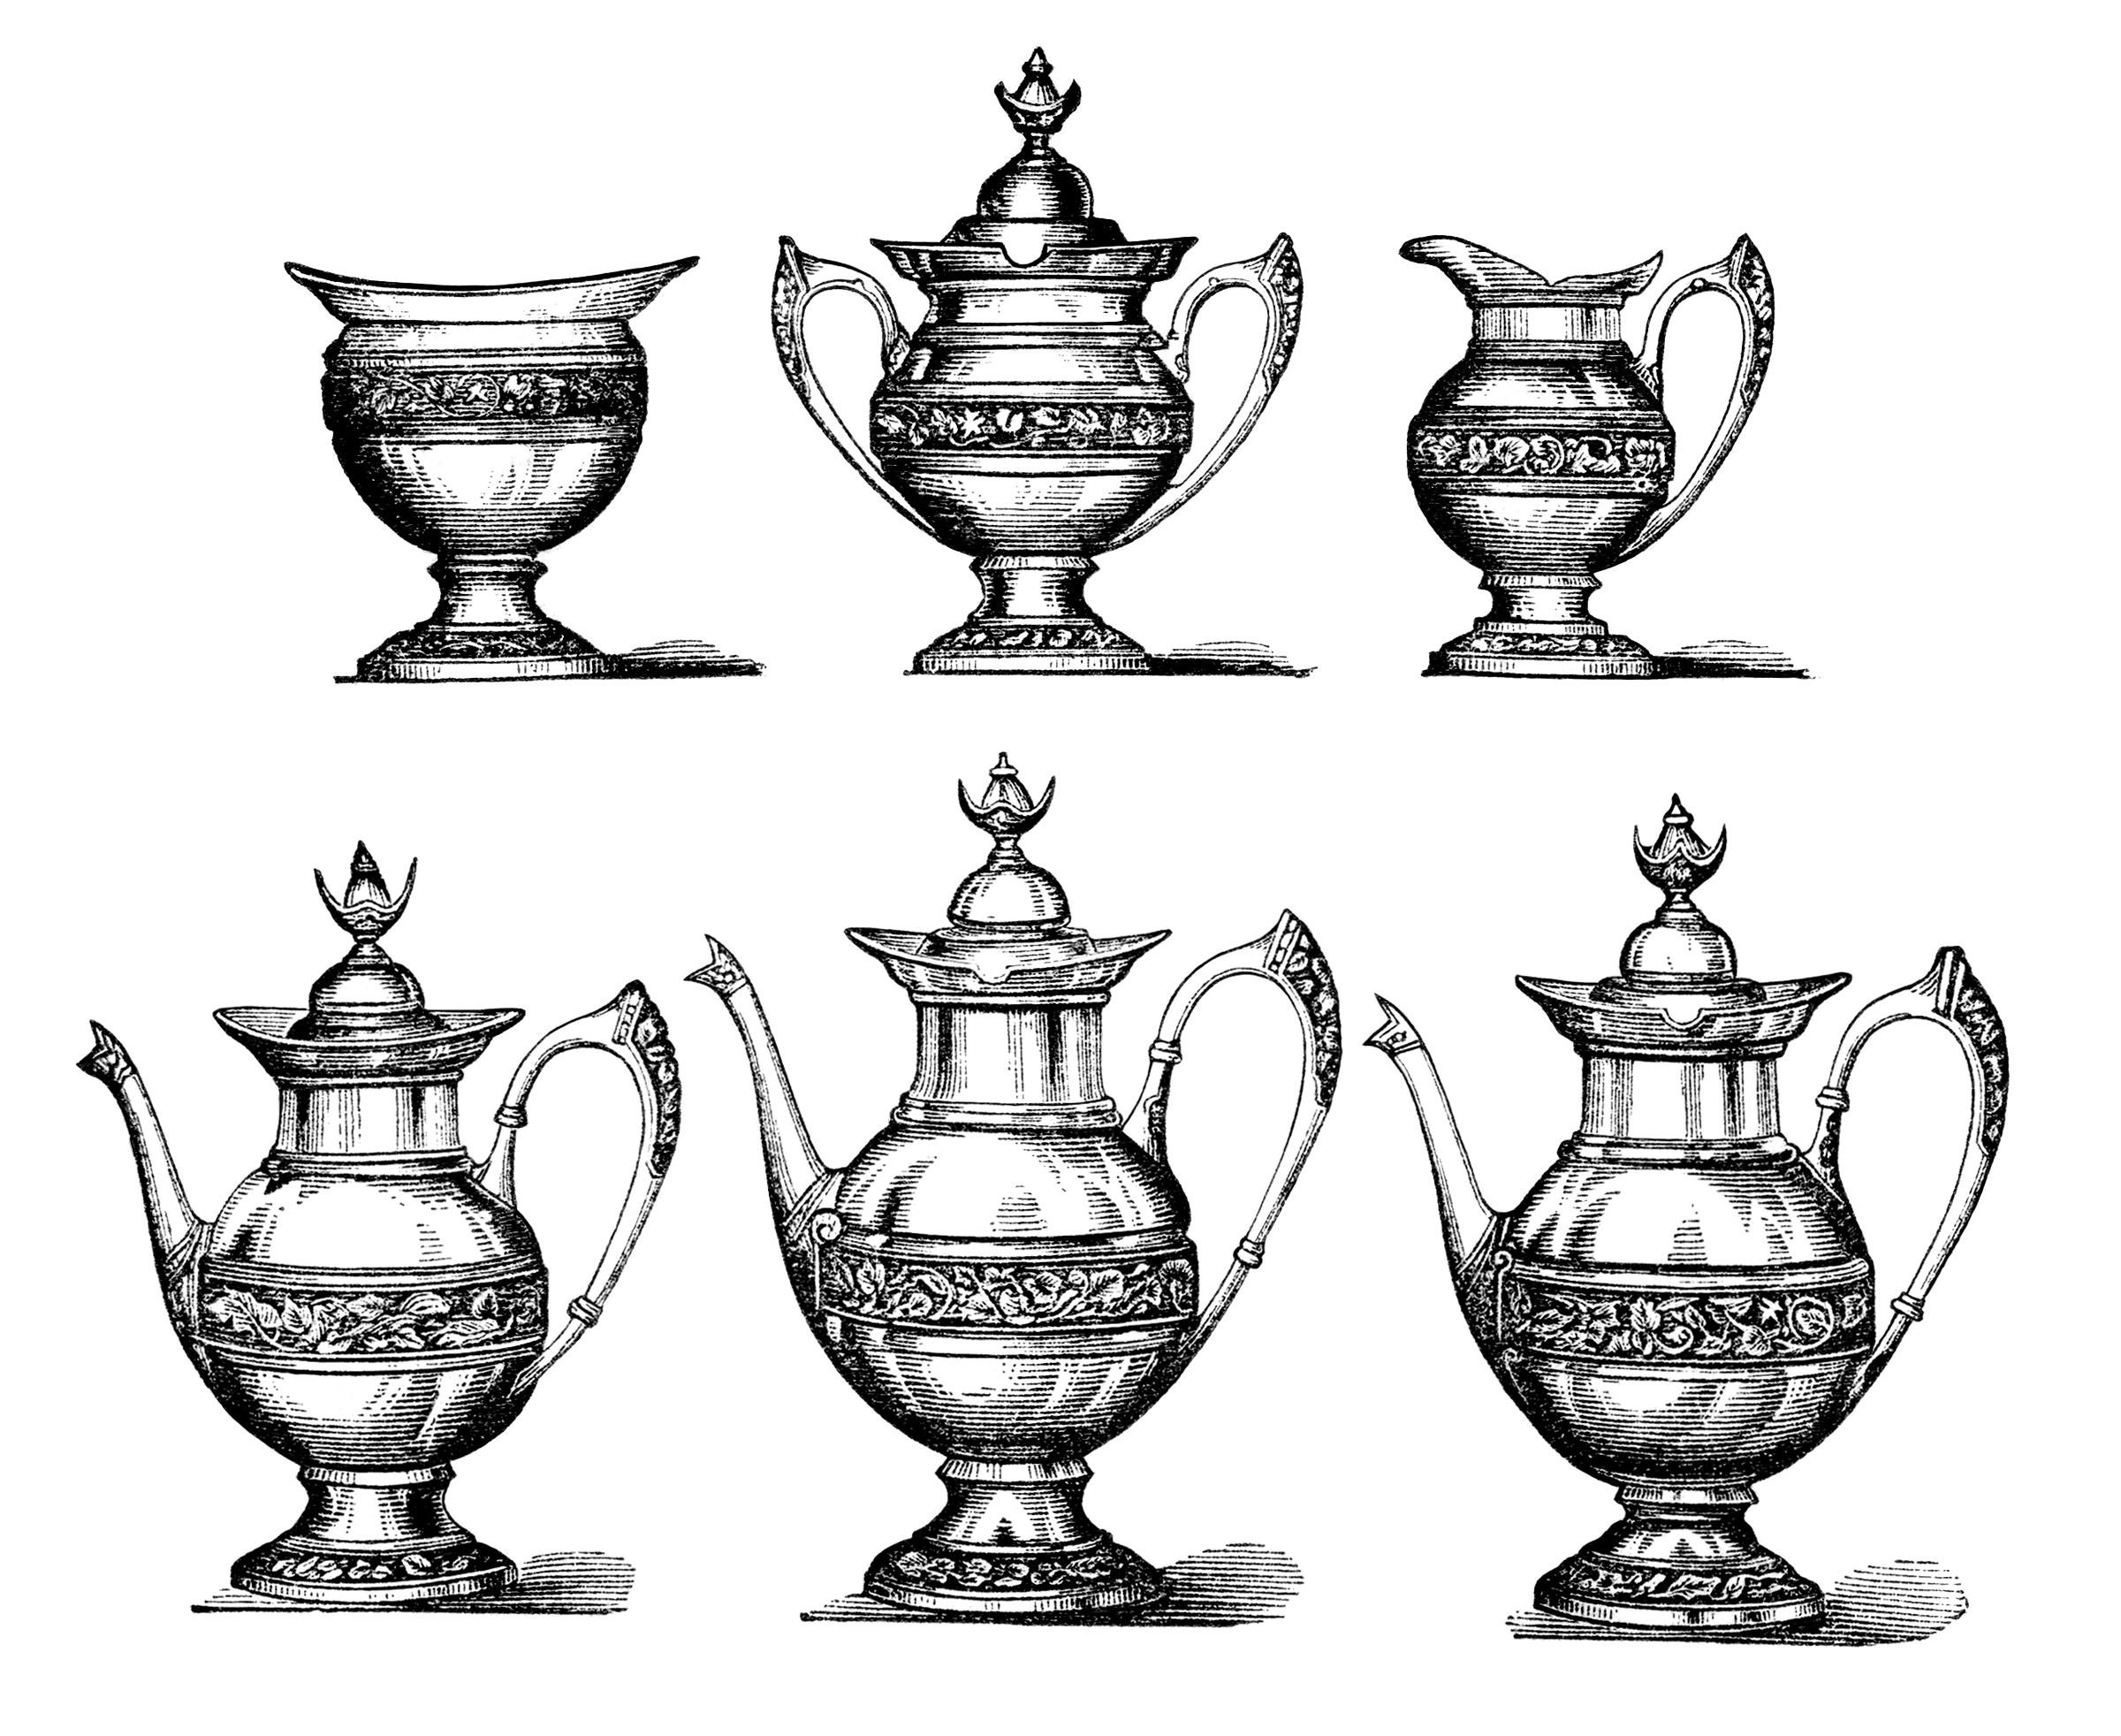 vintage tea set clipart, antique pot bowl image, old fashioned teapot illustration, free black and white clip art, vintage tea coffee graphics